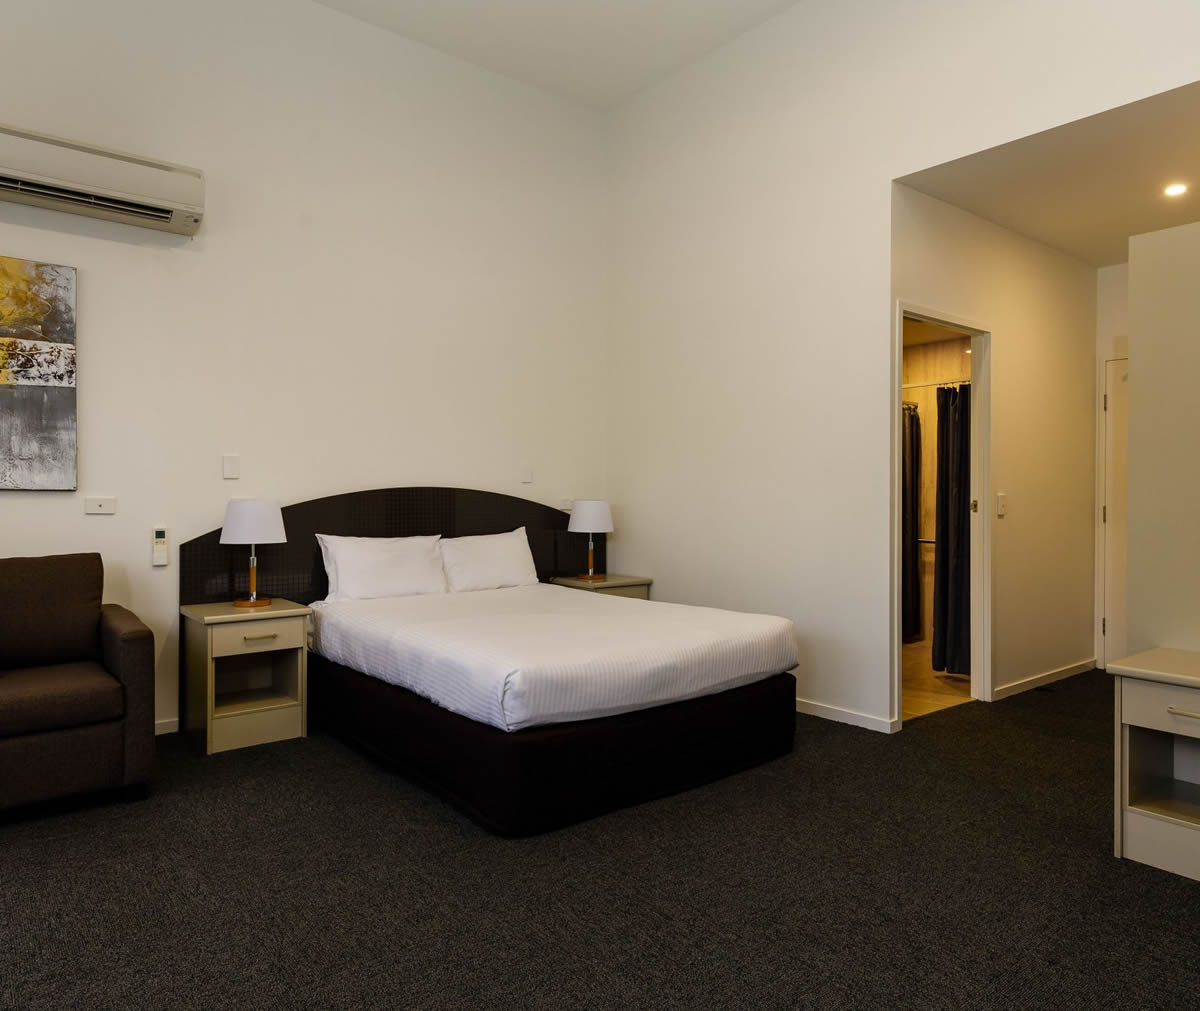 Waterloo Bay Hotel - Apartment Accommodation - Berrima Queen Apartment 12